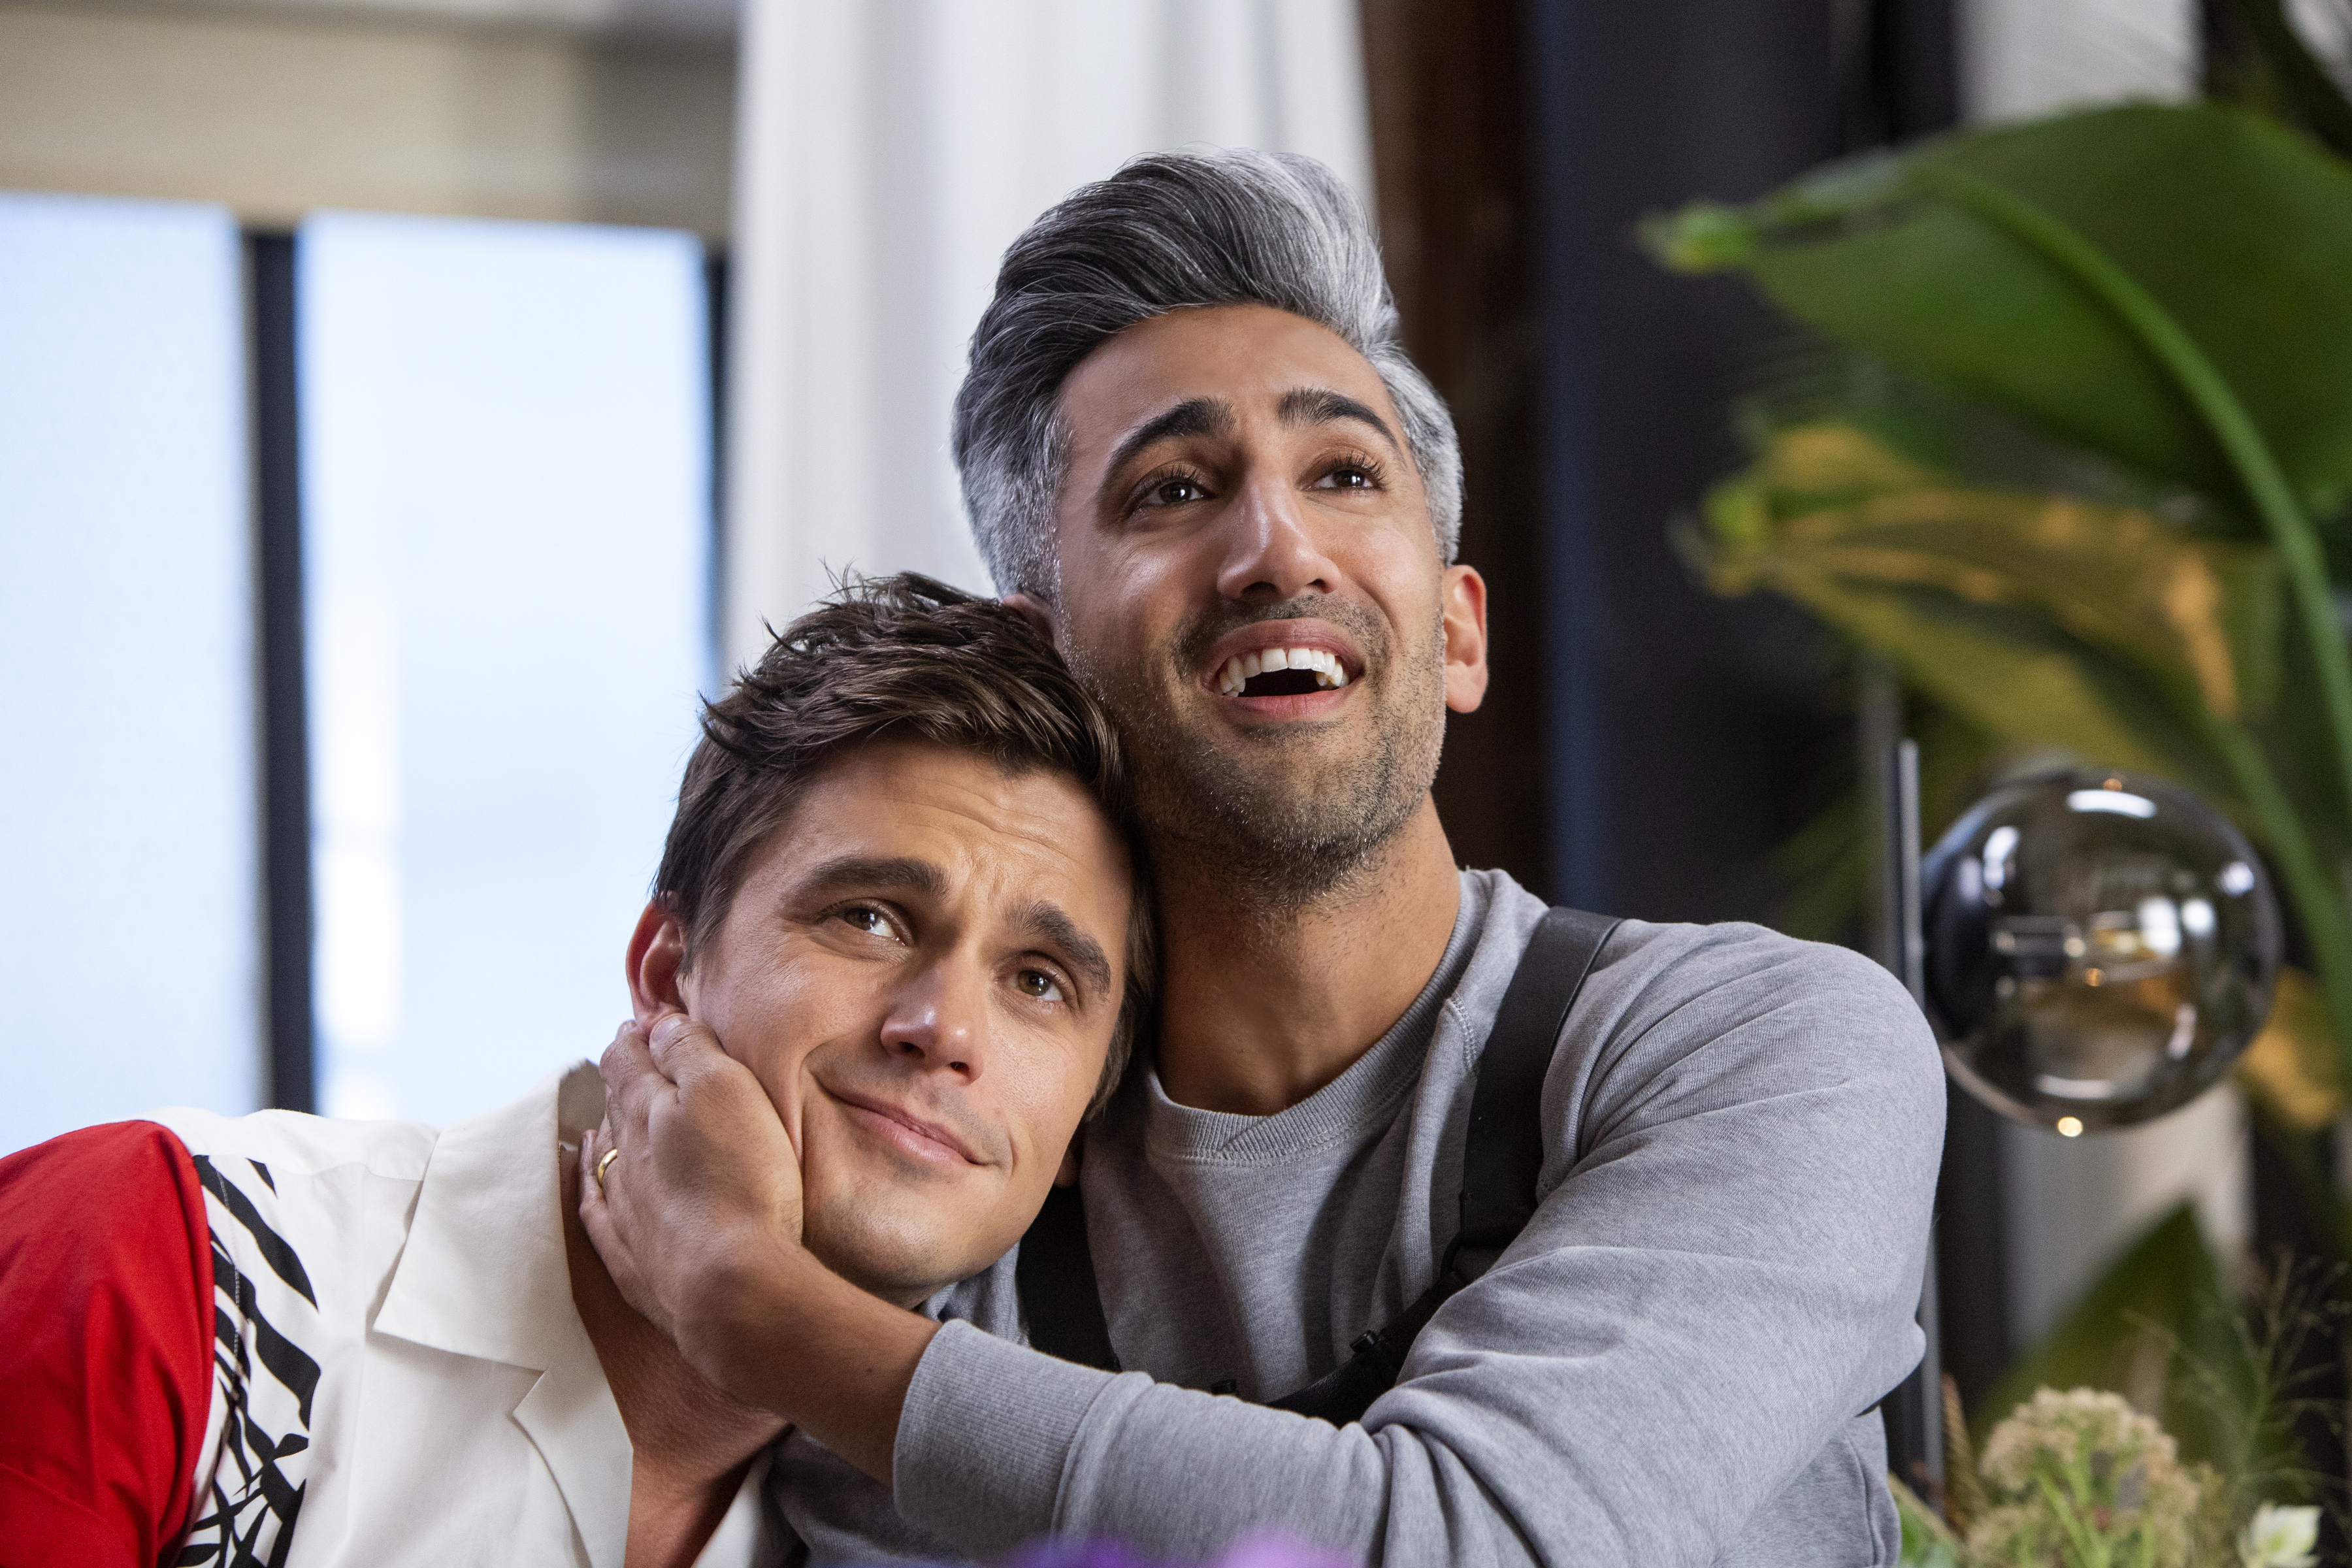 Still for the queer Eye season 3 trailer Netflix dropped on March 4.